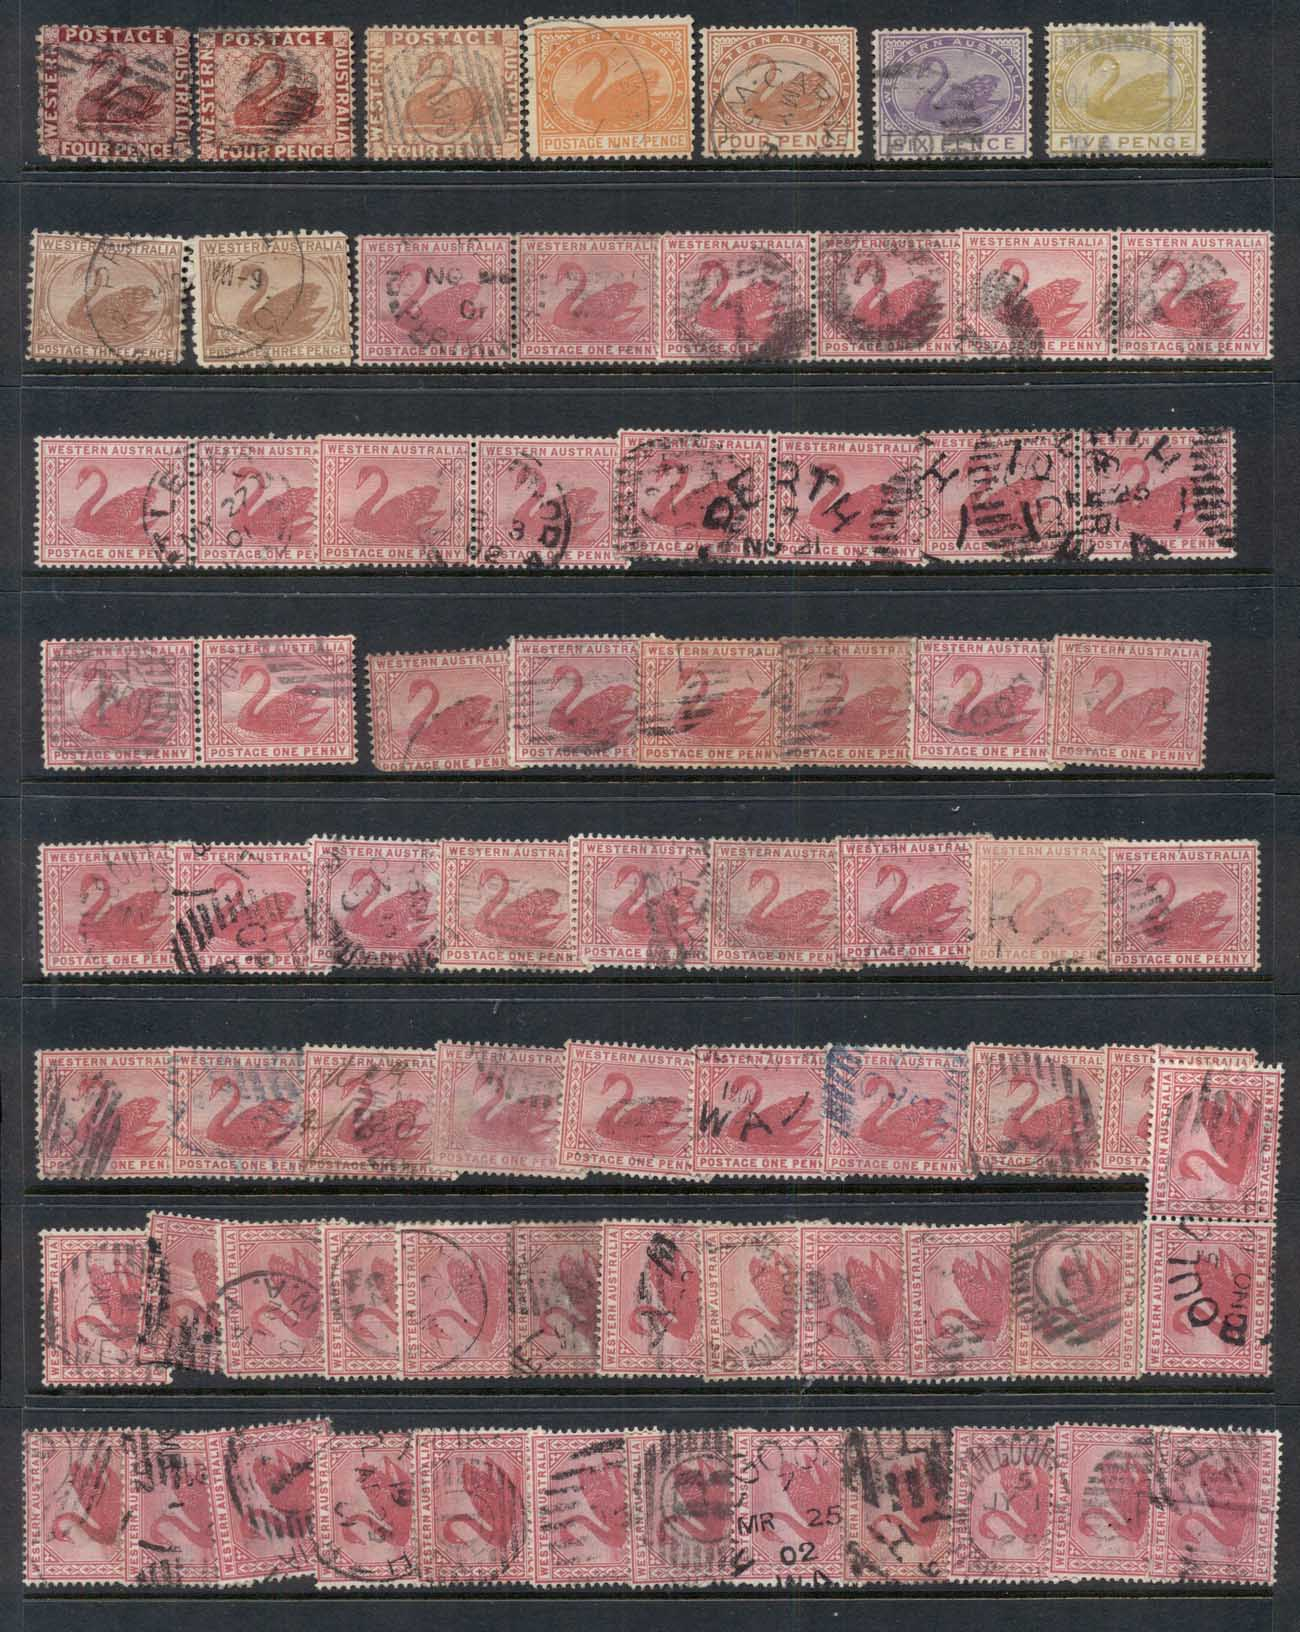 WA 1860's on Assorted Oddments, duplicates, interest for postmarks, perforations, shades & watermark varieties, (faults)4 scans